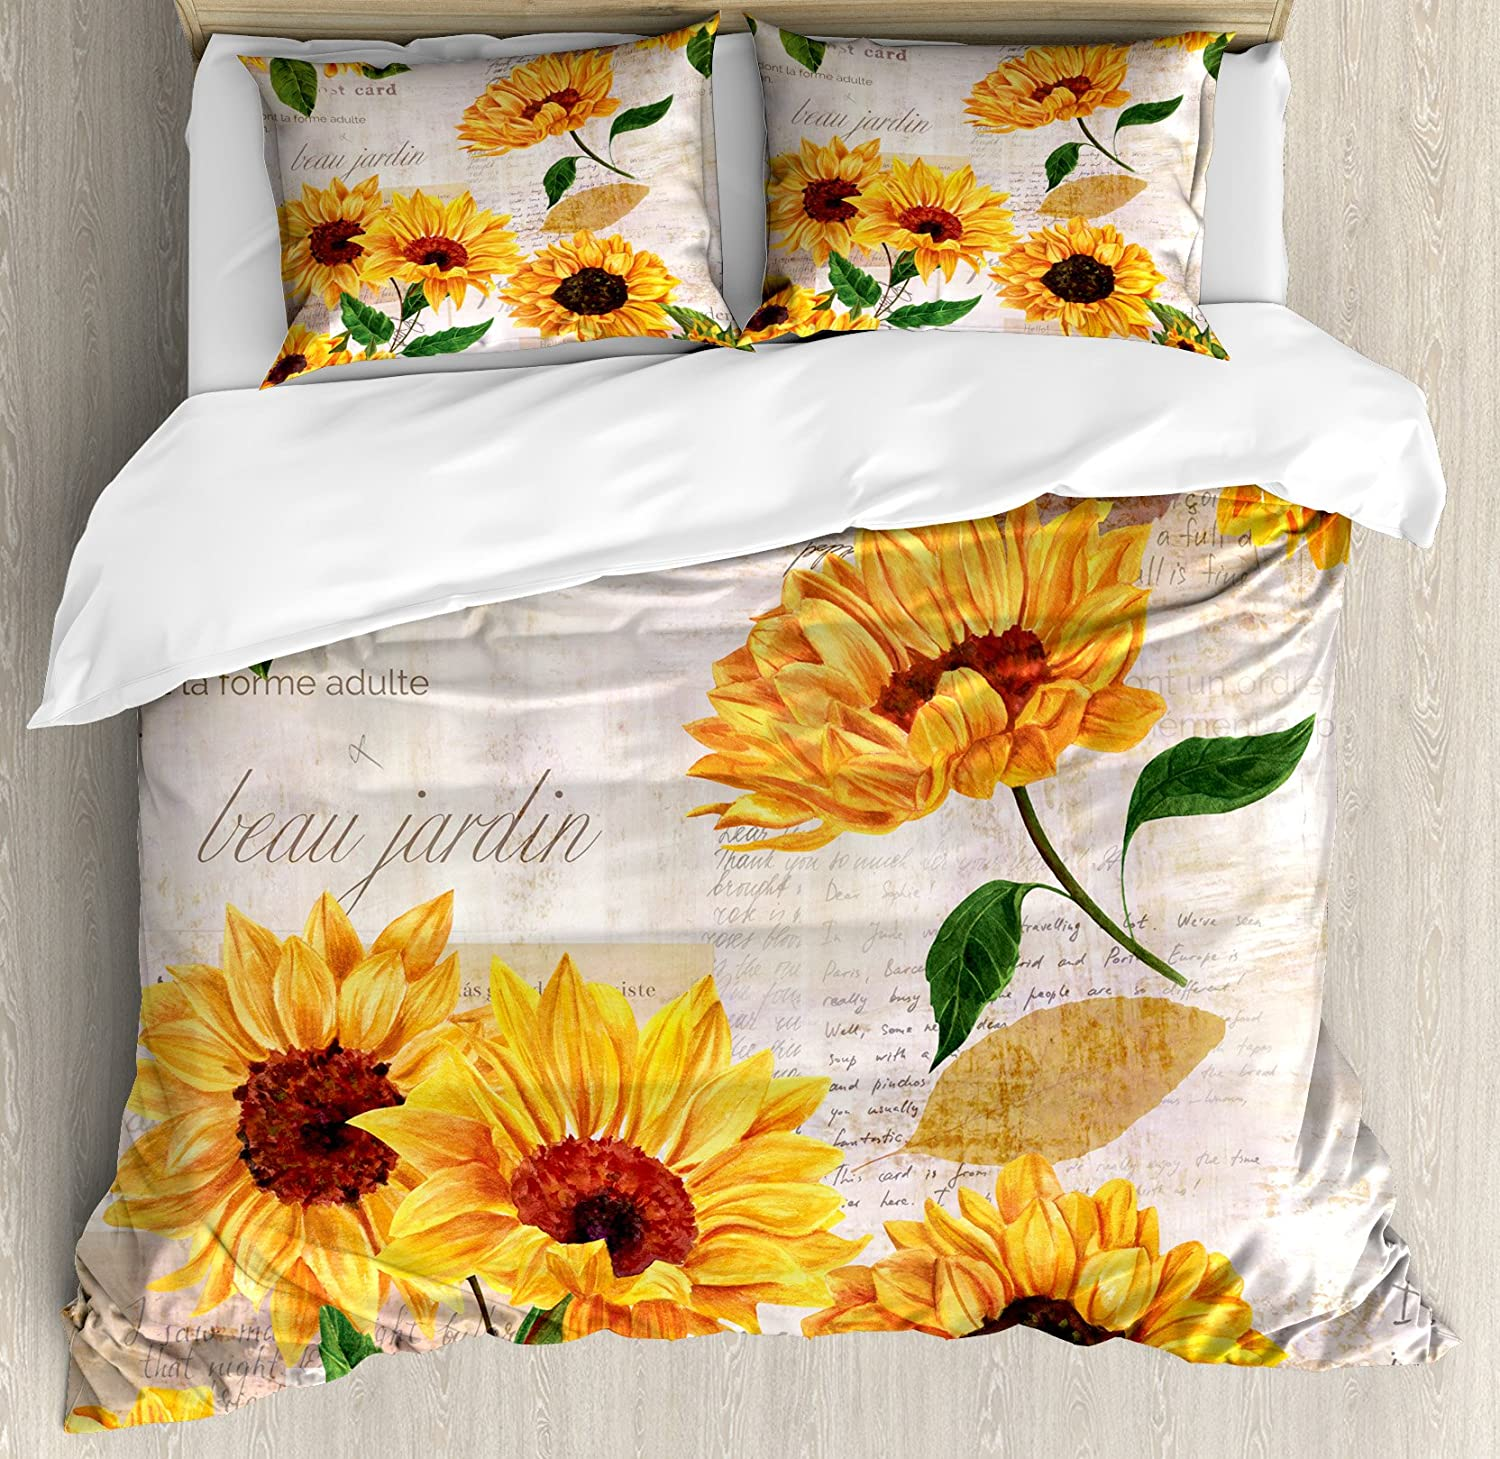 Lunarable Sunflower King Size Duvet Cover Set, Romantic Flowers on Old Fashioned Letters Postcards Newspapers, Decorative 3 Piece Bedding Set with 2 Pillow Shams, Fern Green Marigold Beige